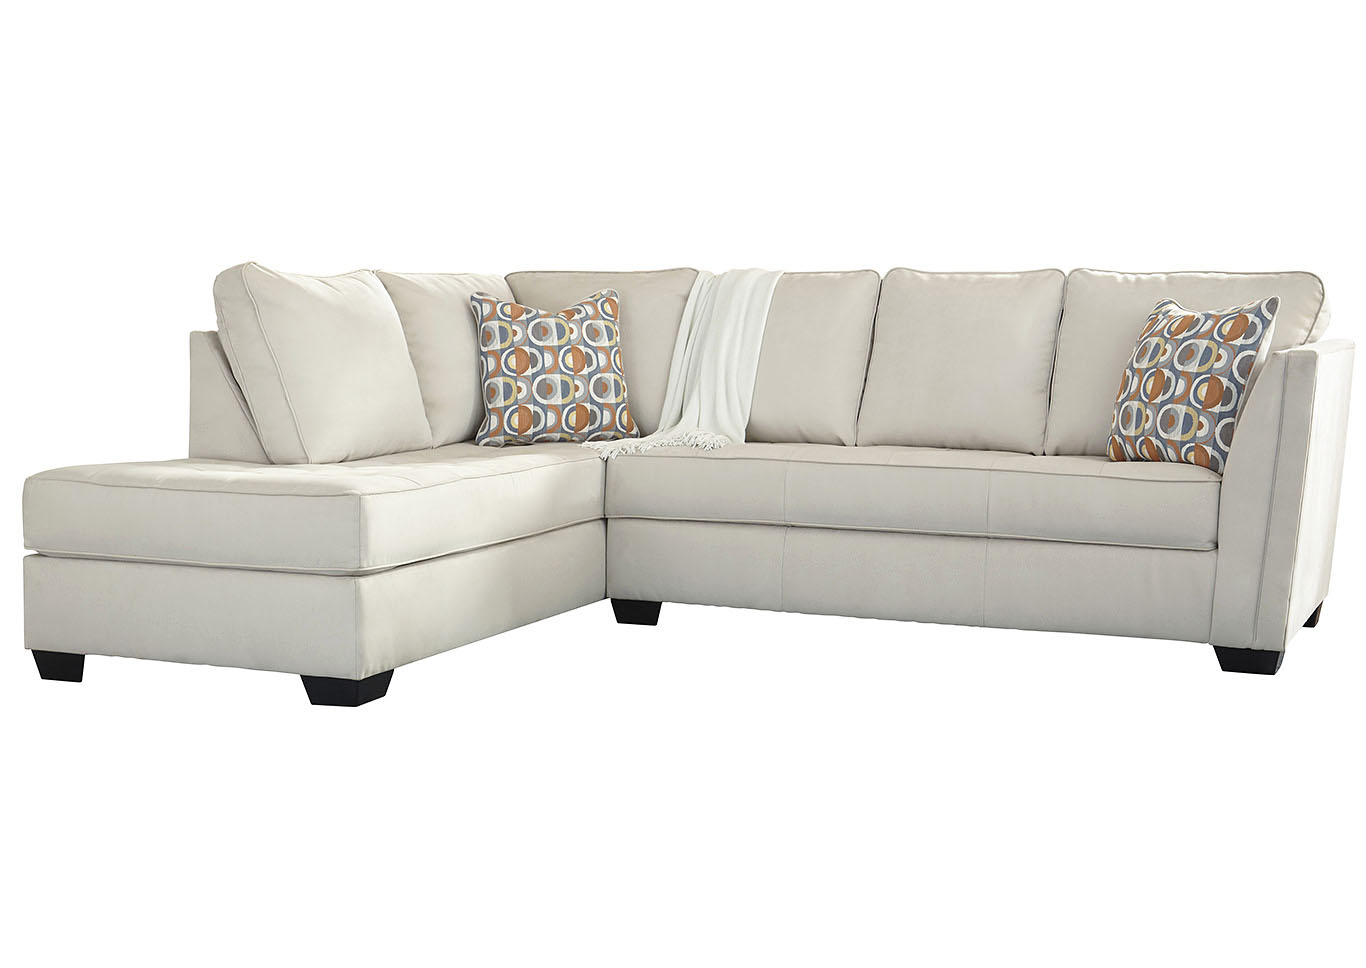 Filone Ivory RAF Sofa Chaise,Signature Design By Ashley